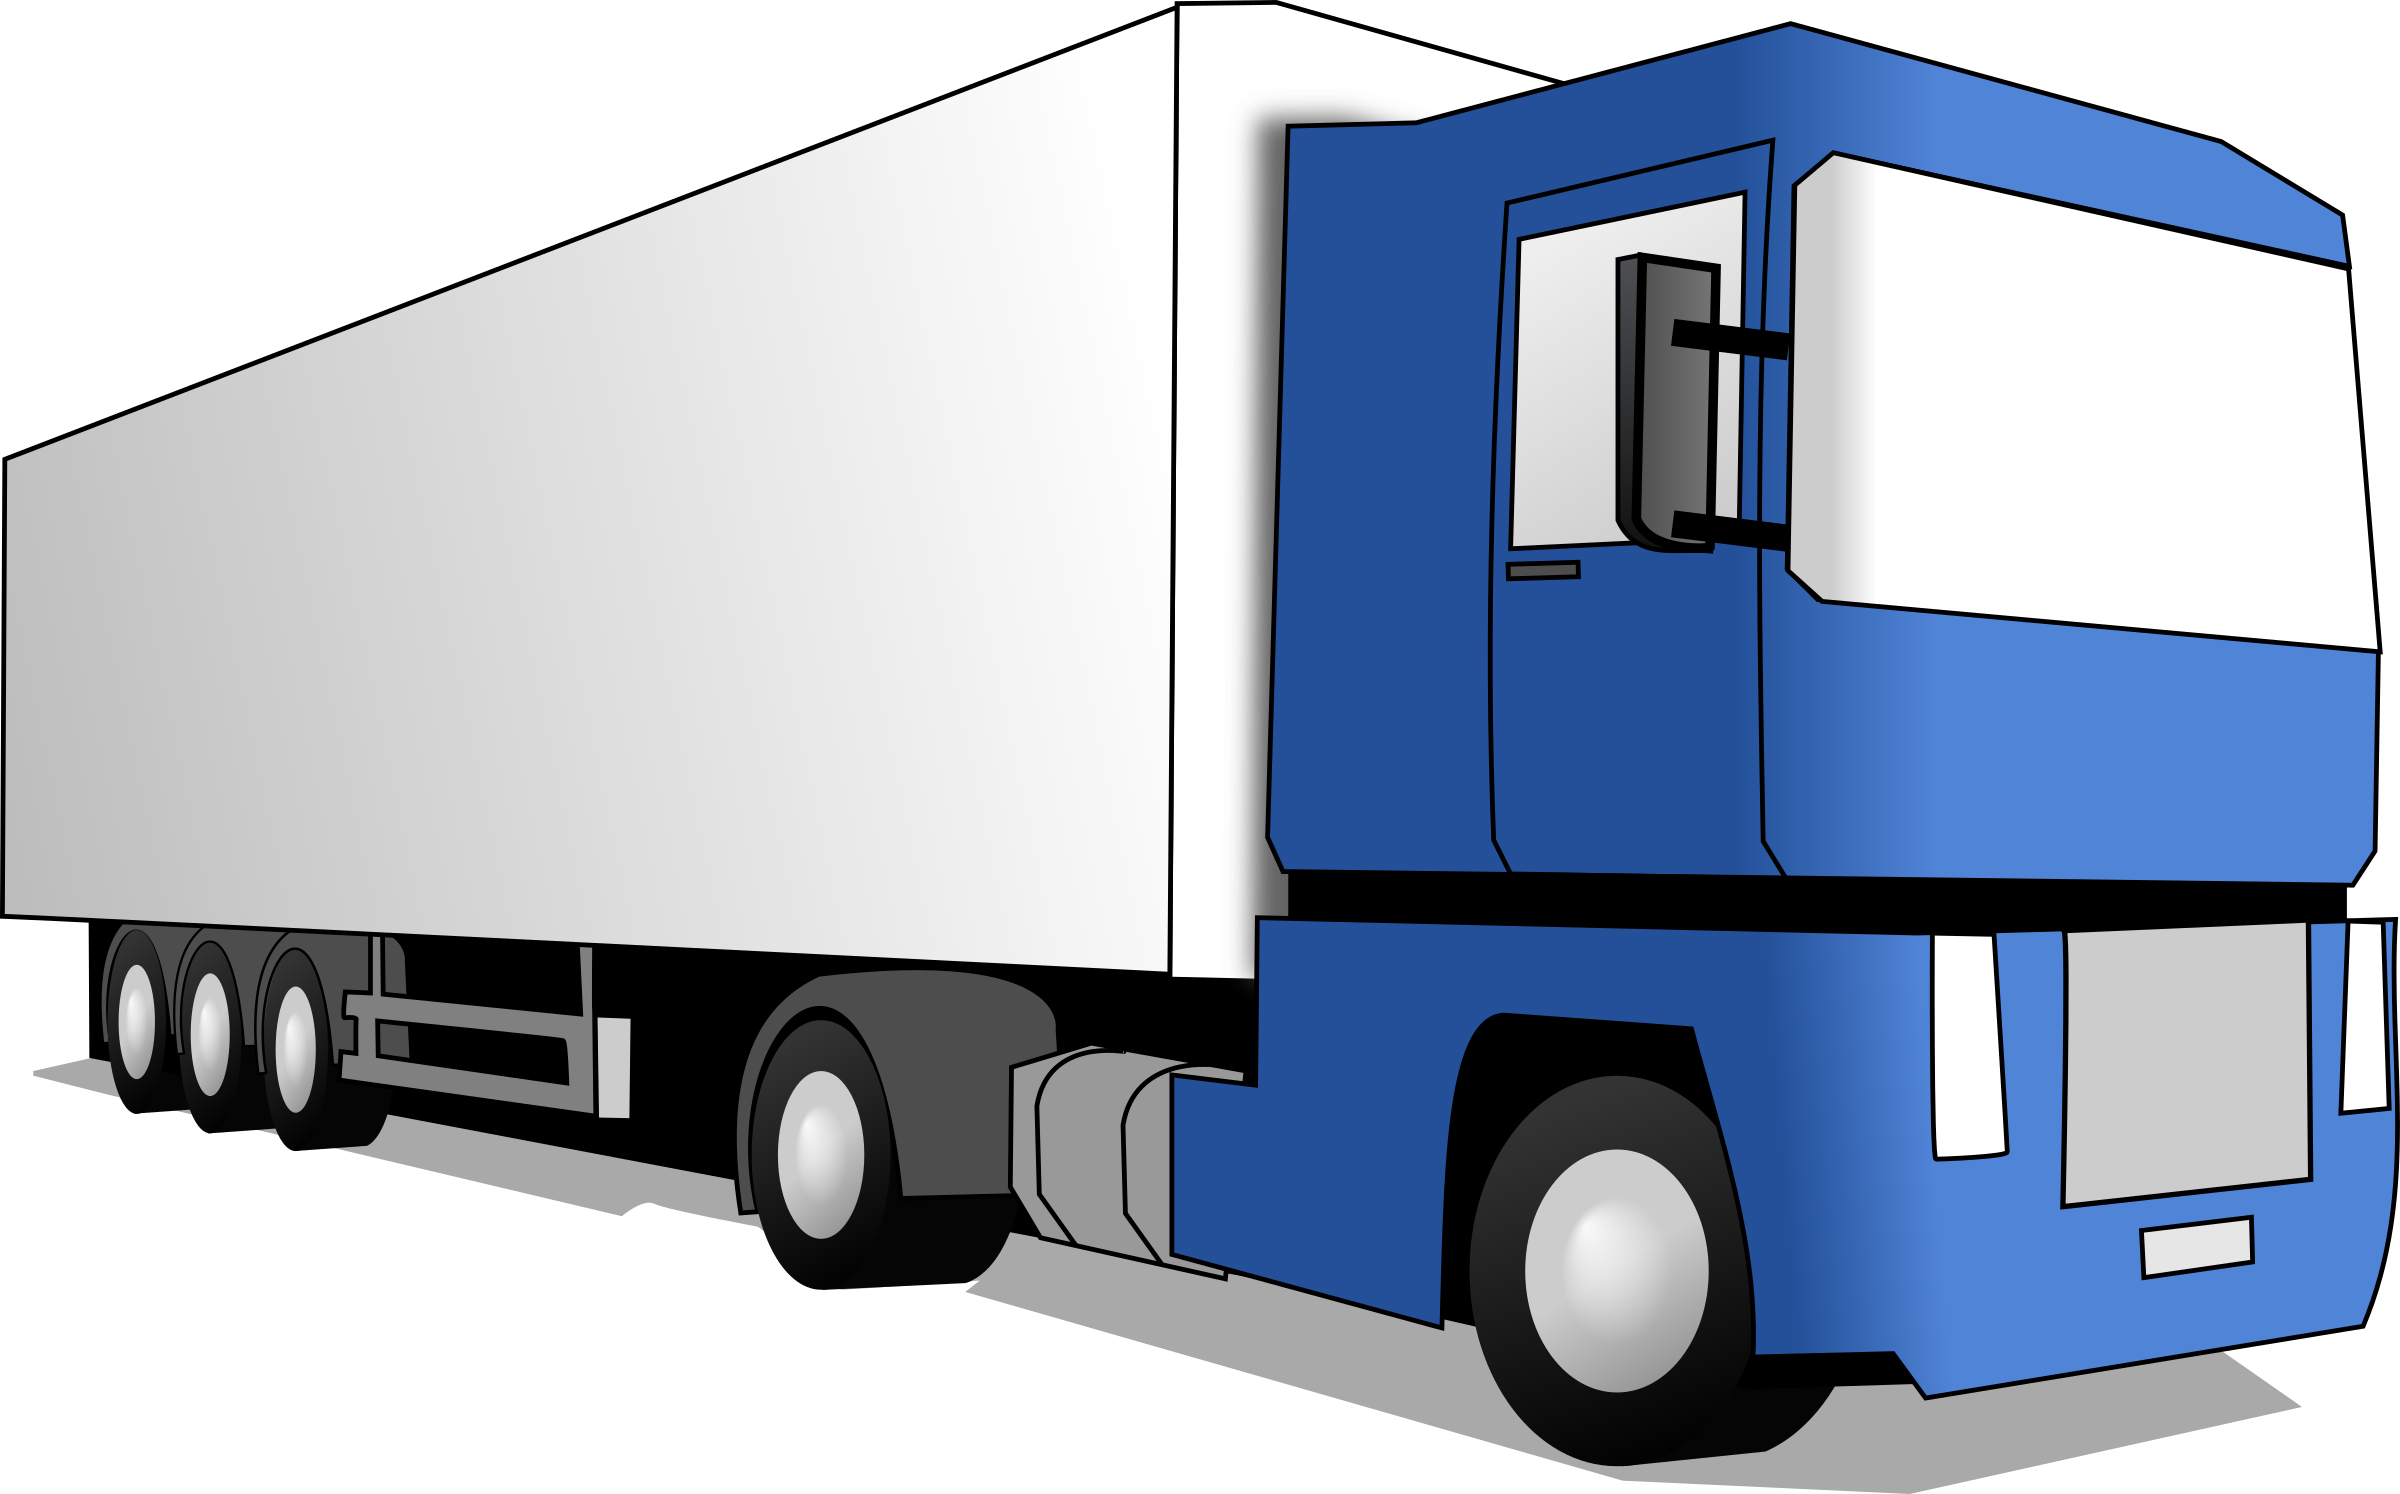 2400x1494 Truck Clipart Top View Free Images